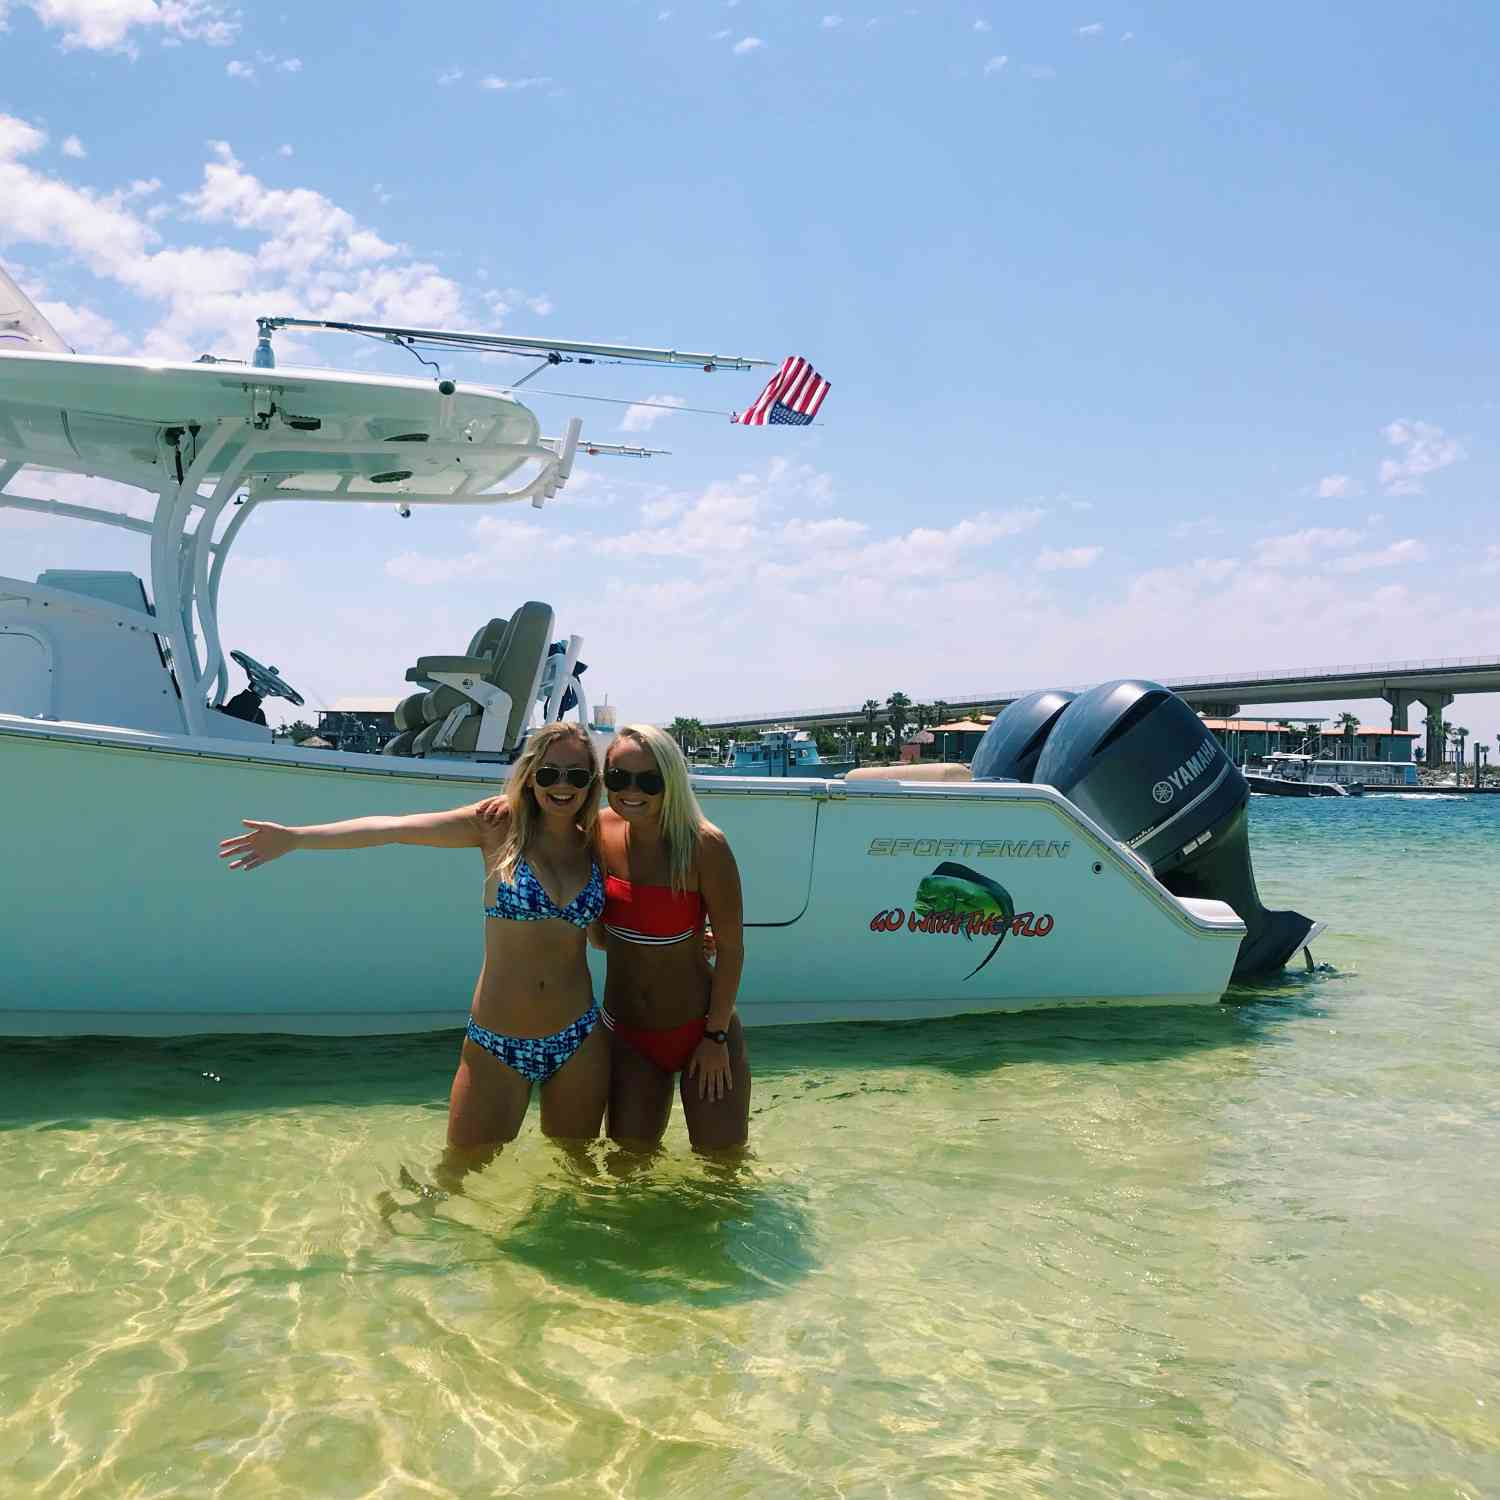 Title: Sunday Funday on the Island - On board their Sportsman Open 312 Center Console - Location: Robinson Island Orange Beach, AL. Participating in the Photo Contest #SportsmanMay2018